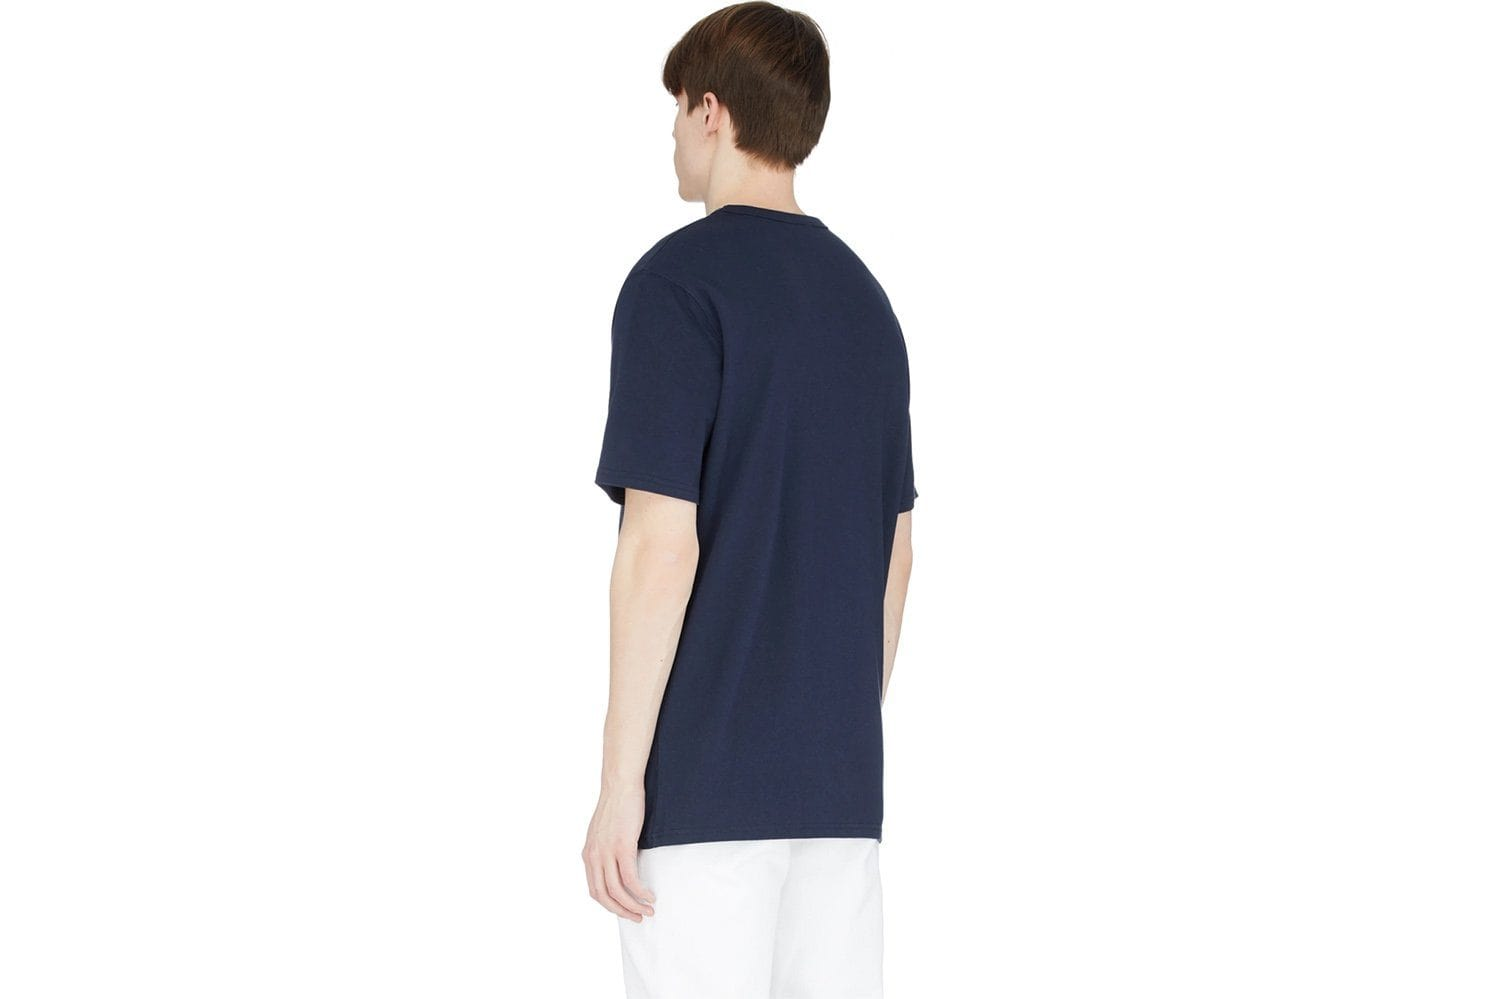 HERITAGE TEE ELEVATED GRAPHIC - T1919G MENS SOFTGOODS CHAMPION